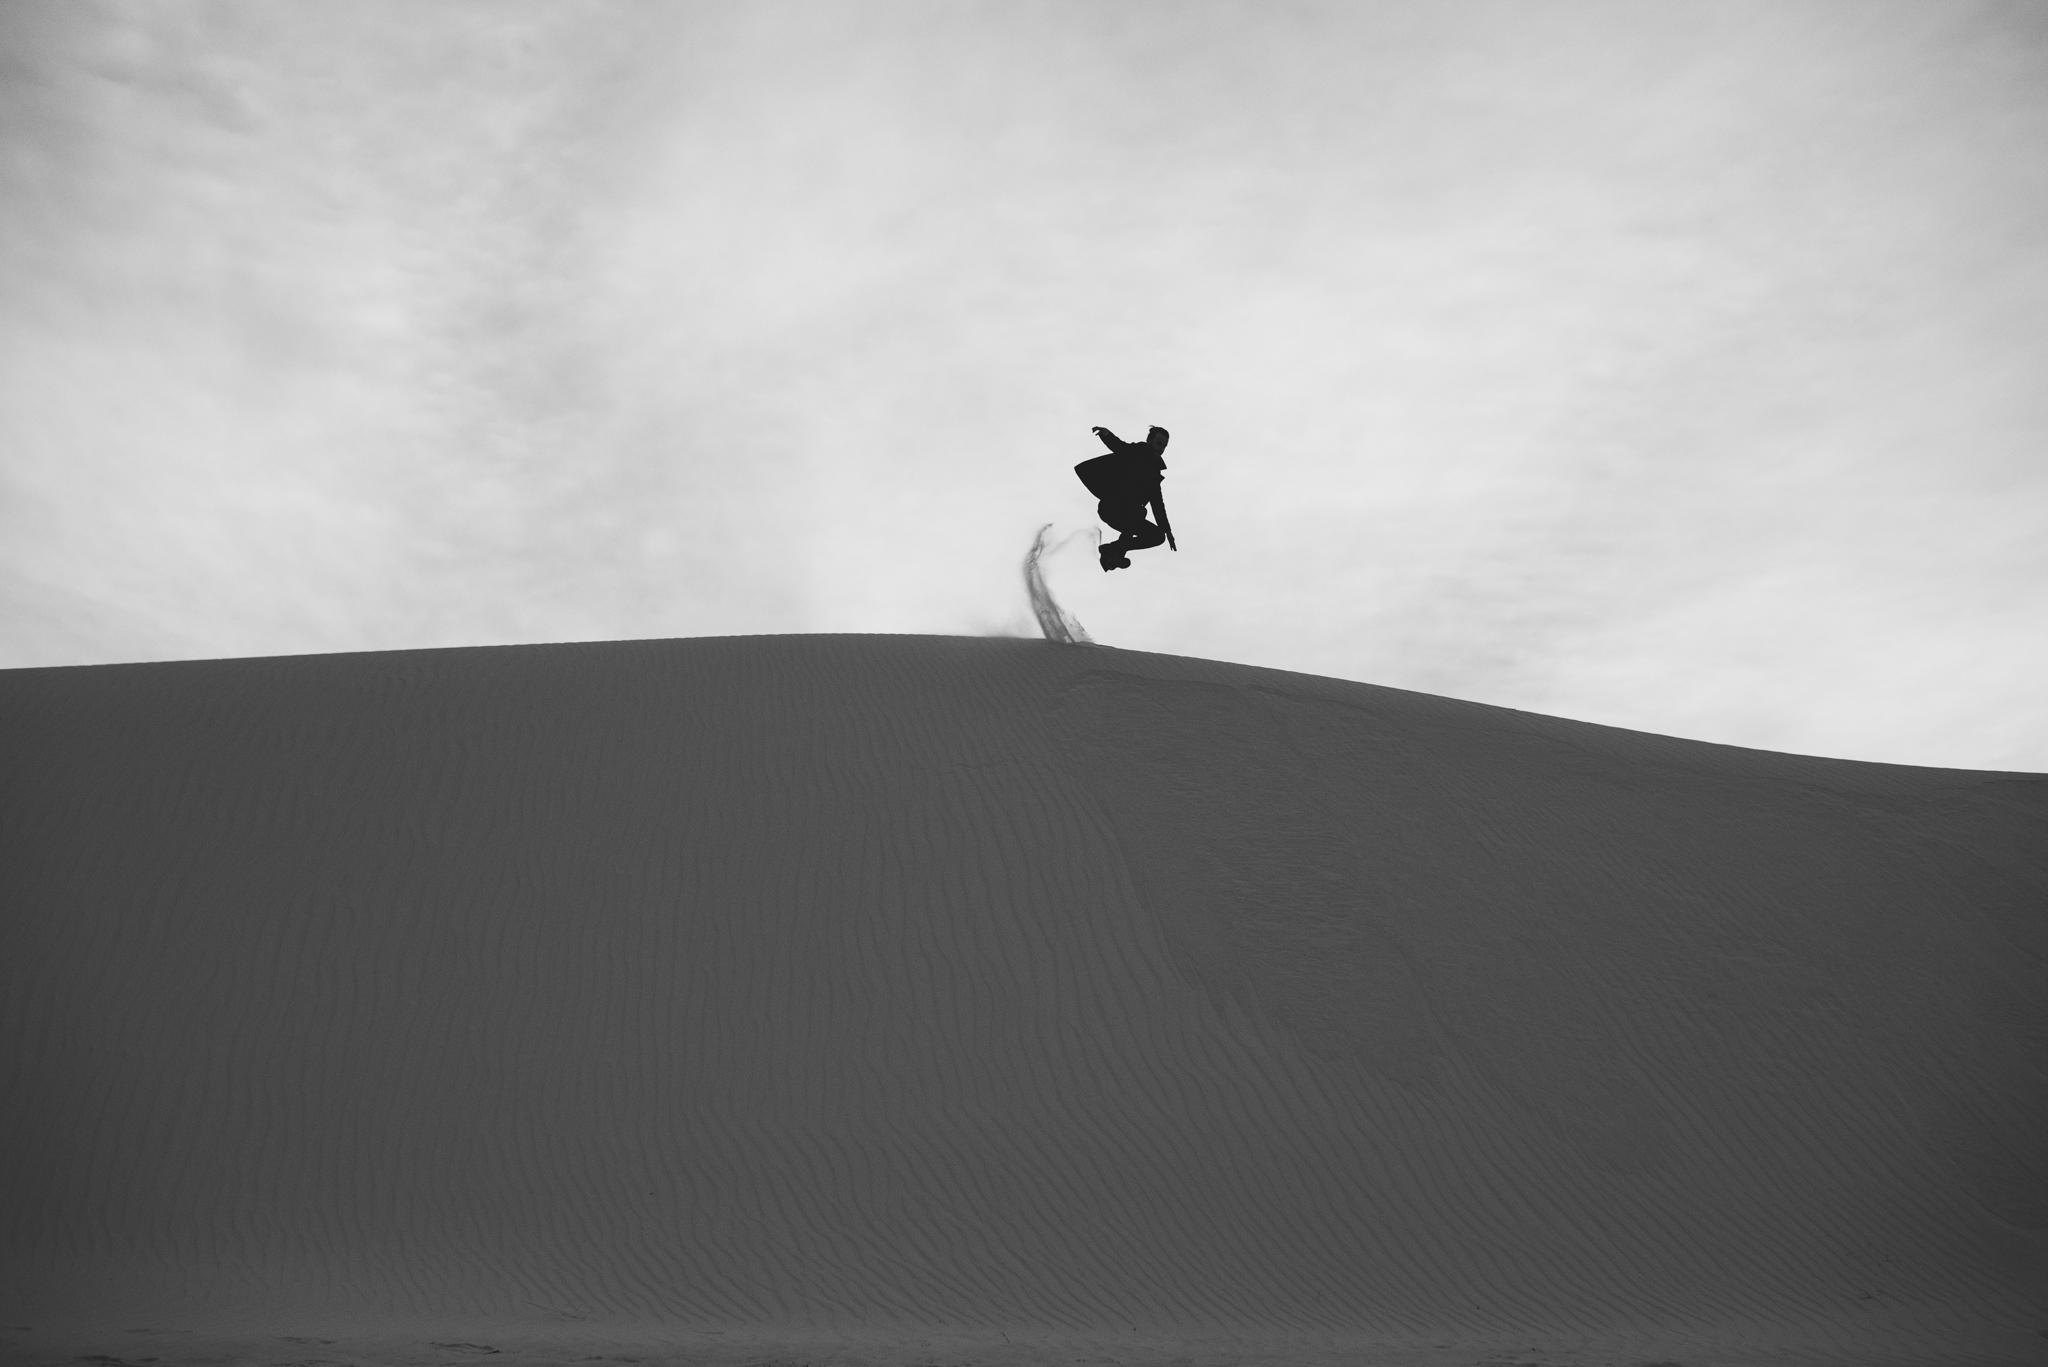 ©The-Ryans-Photography---White-Sands-National-Monument,-New-Mexico-Travel-034.jpg